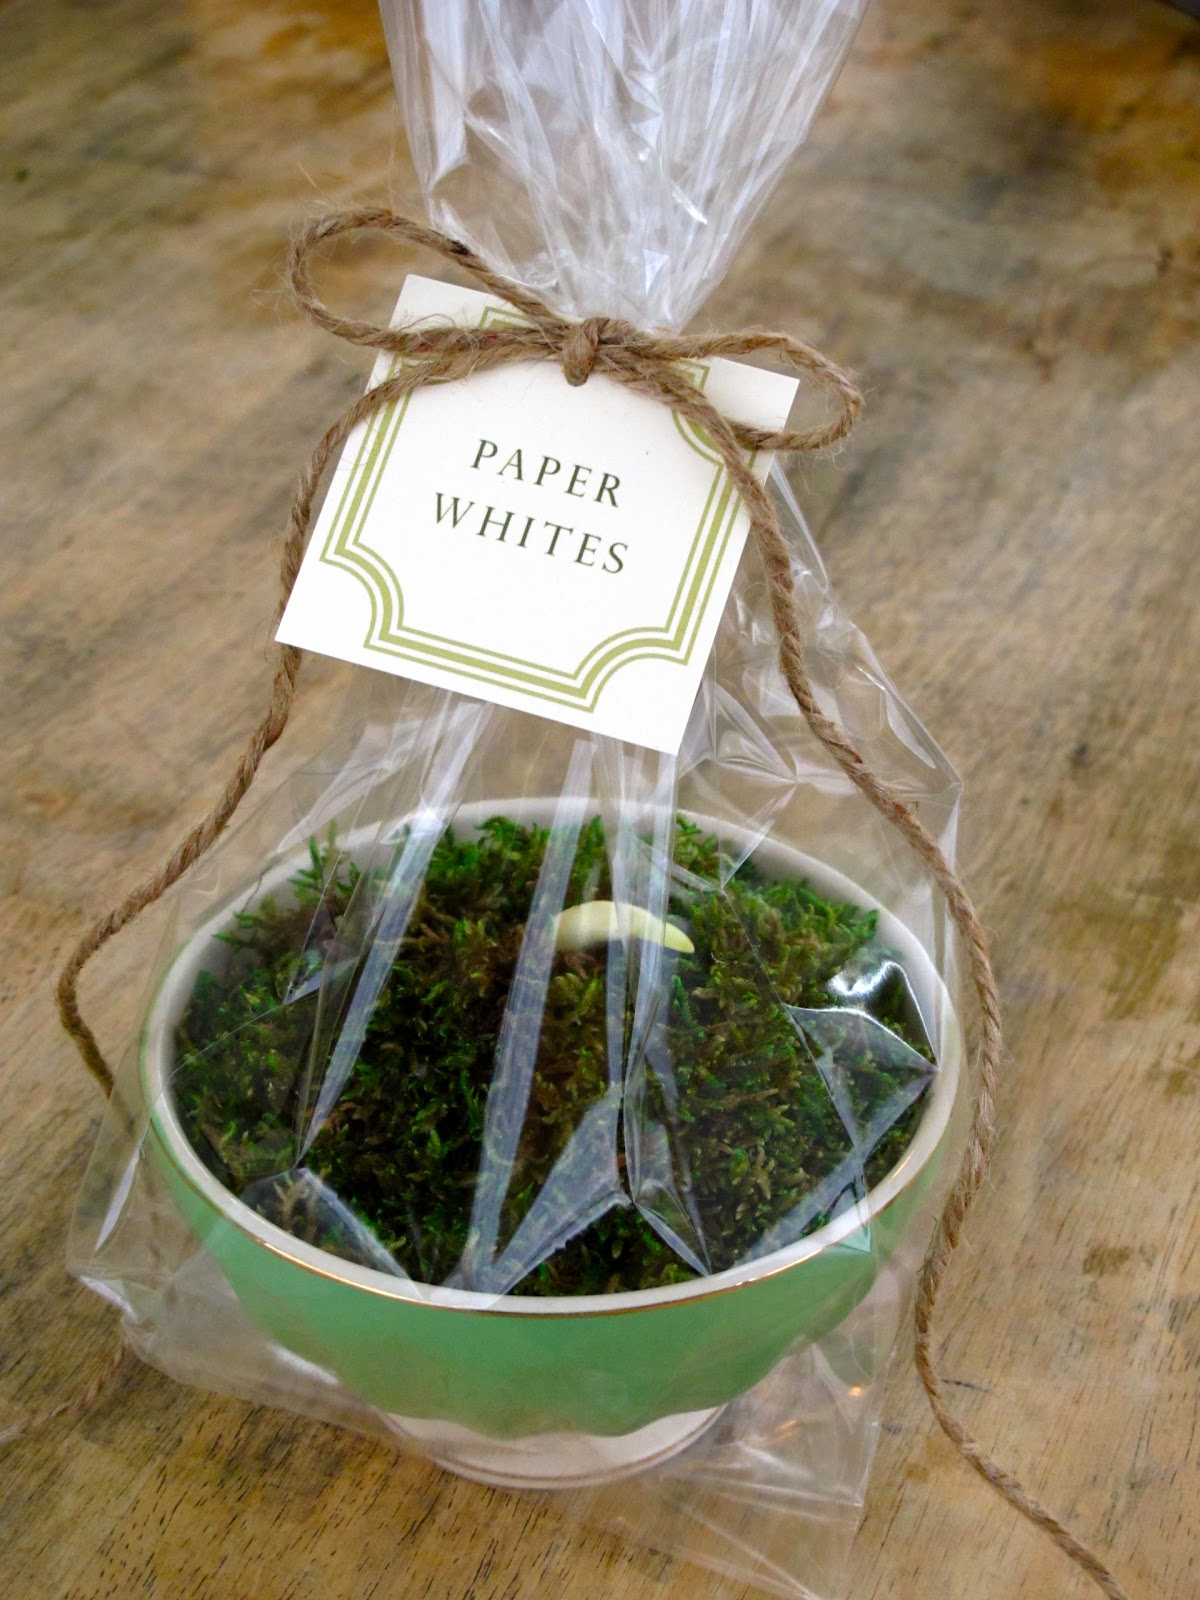 Jenny steffens hobick potted paper whites hostess gift idea Hostess gift